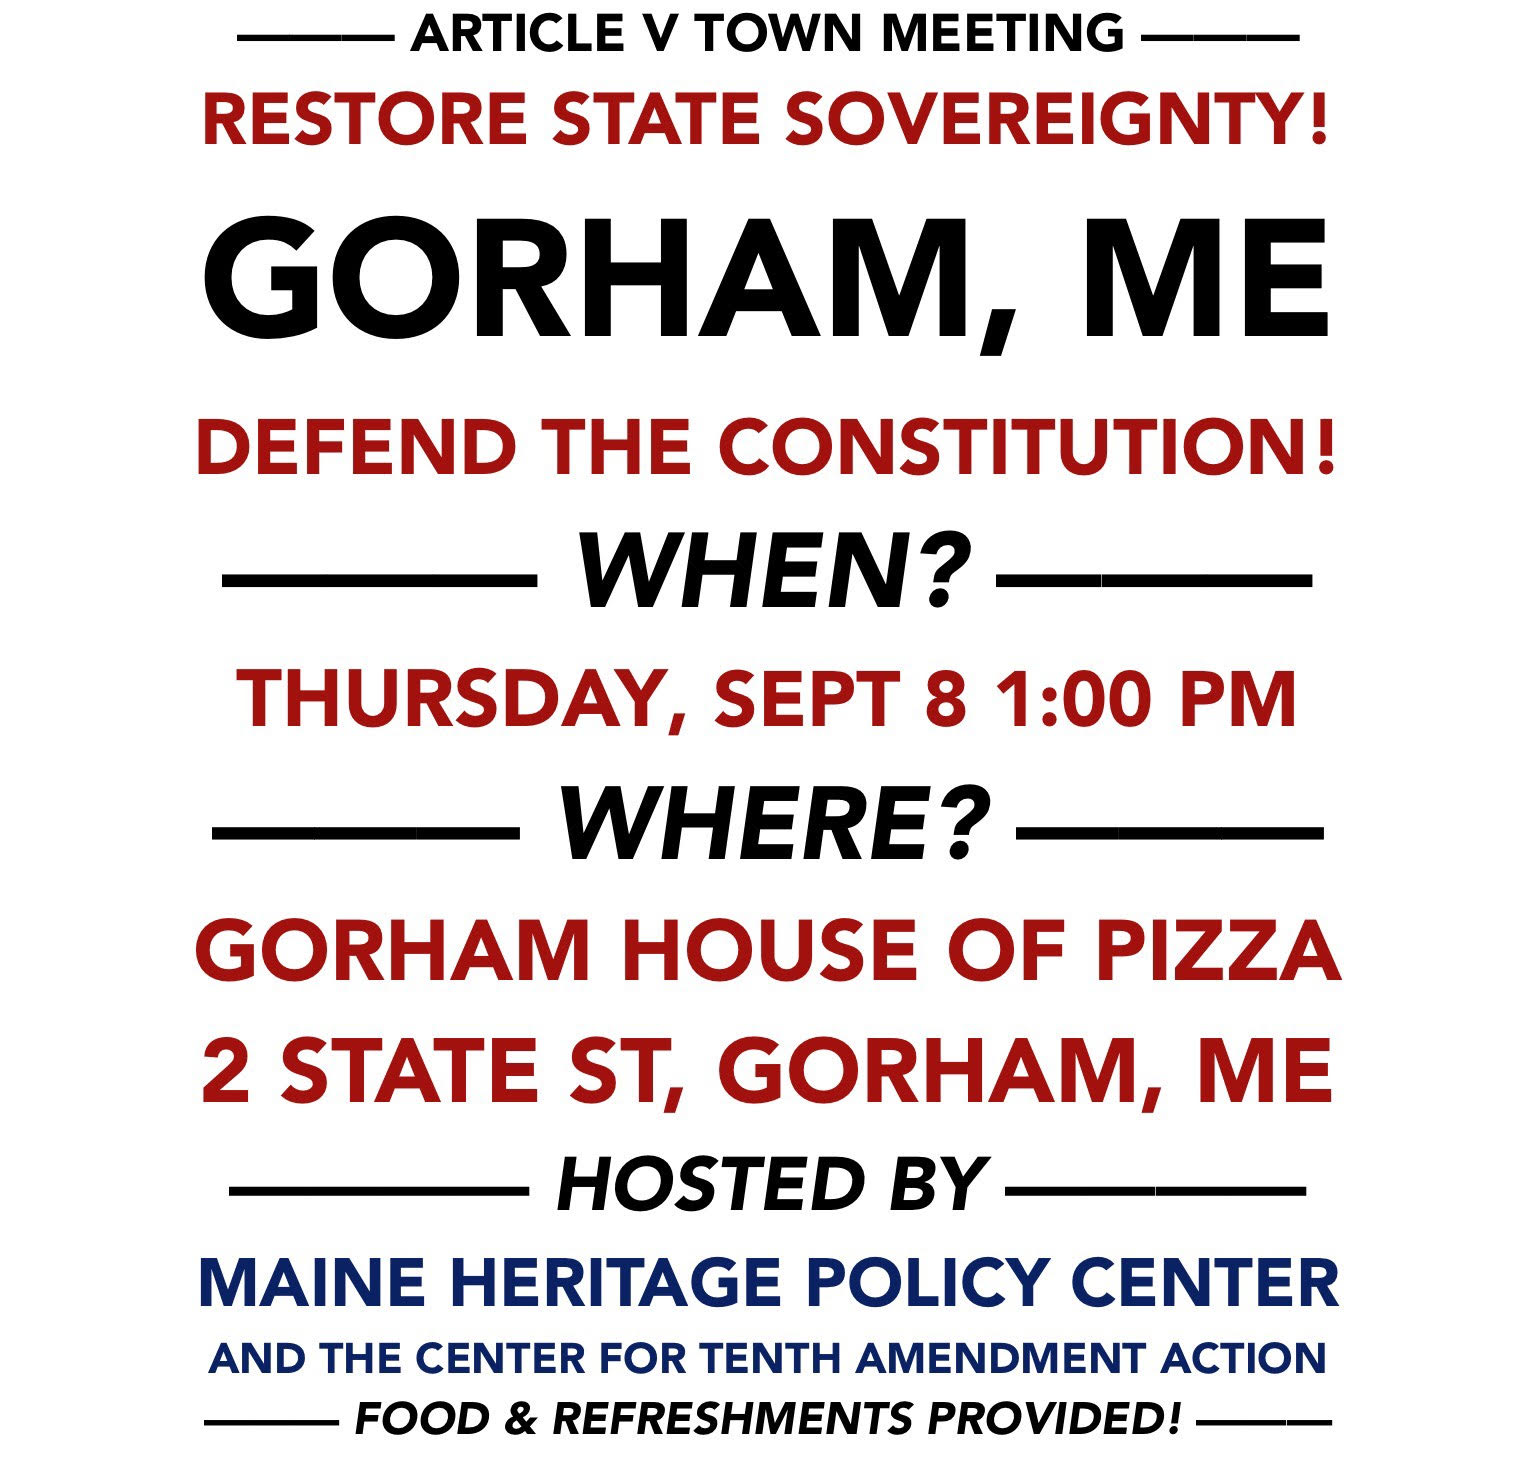 Thursday_Article_5_flyer_(Gorham).jpg